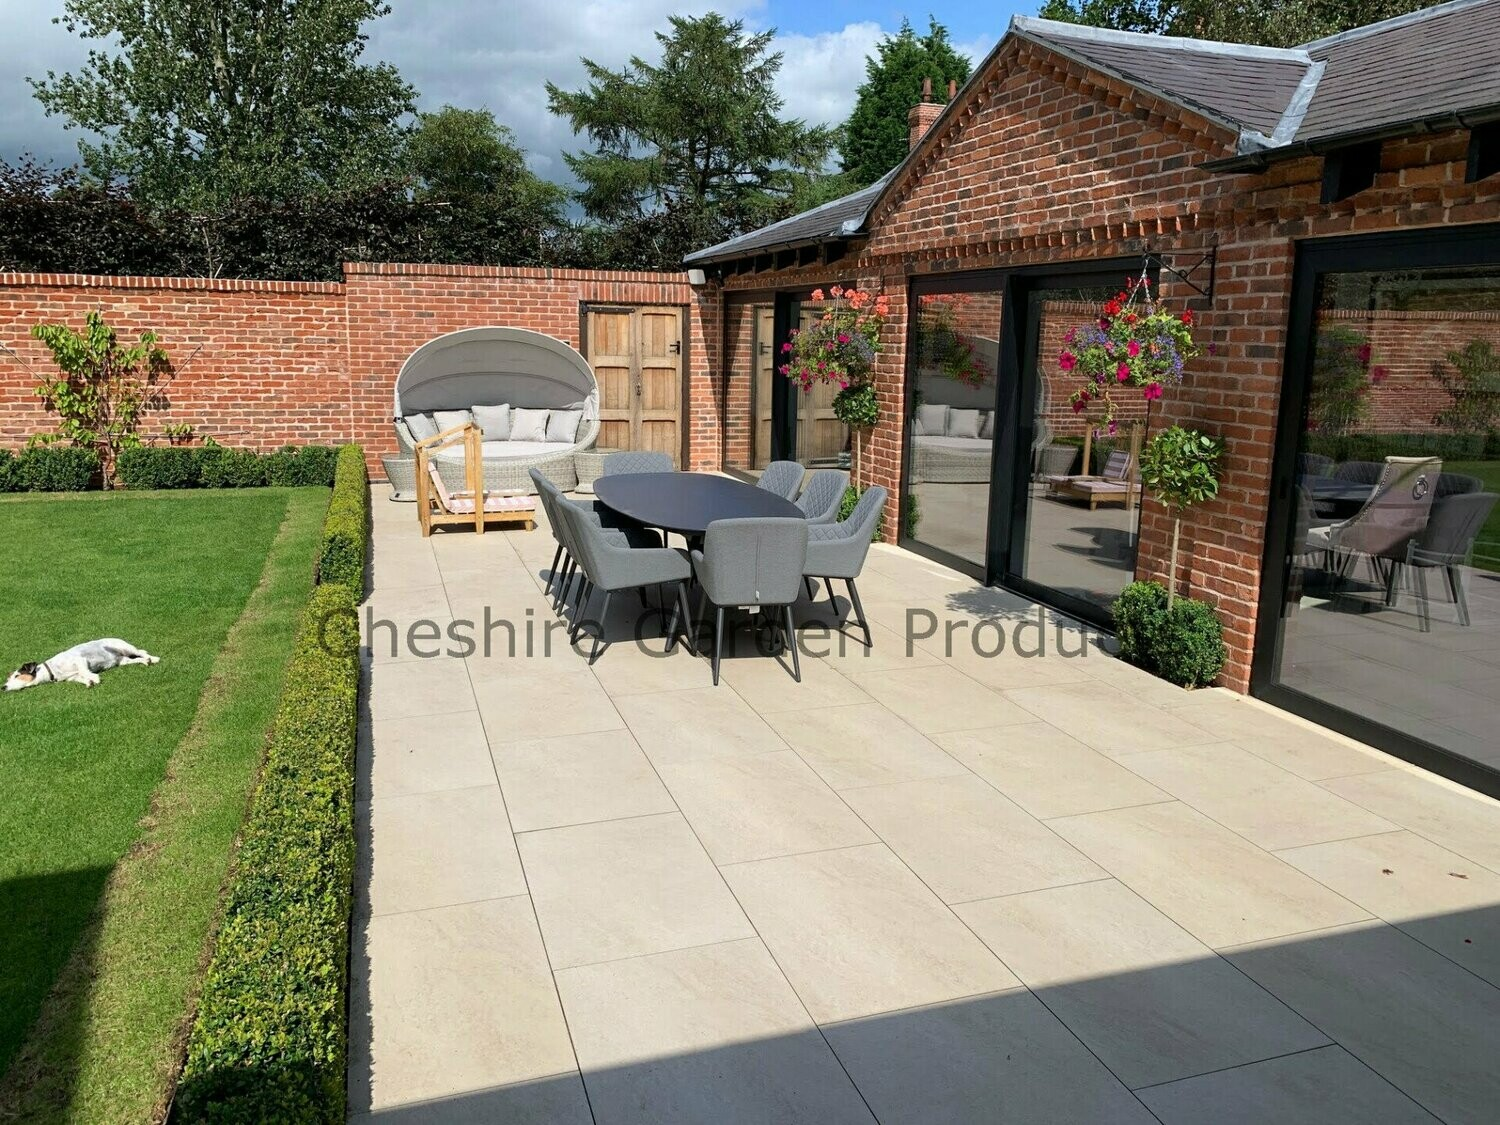 Ivory Beige Vitrified Porcelain Paving 20mm 22.30m2 900x600